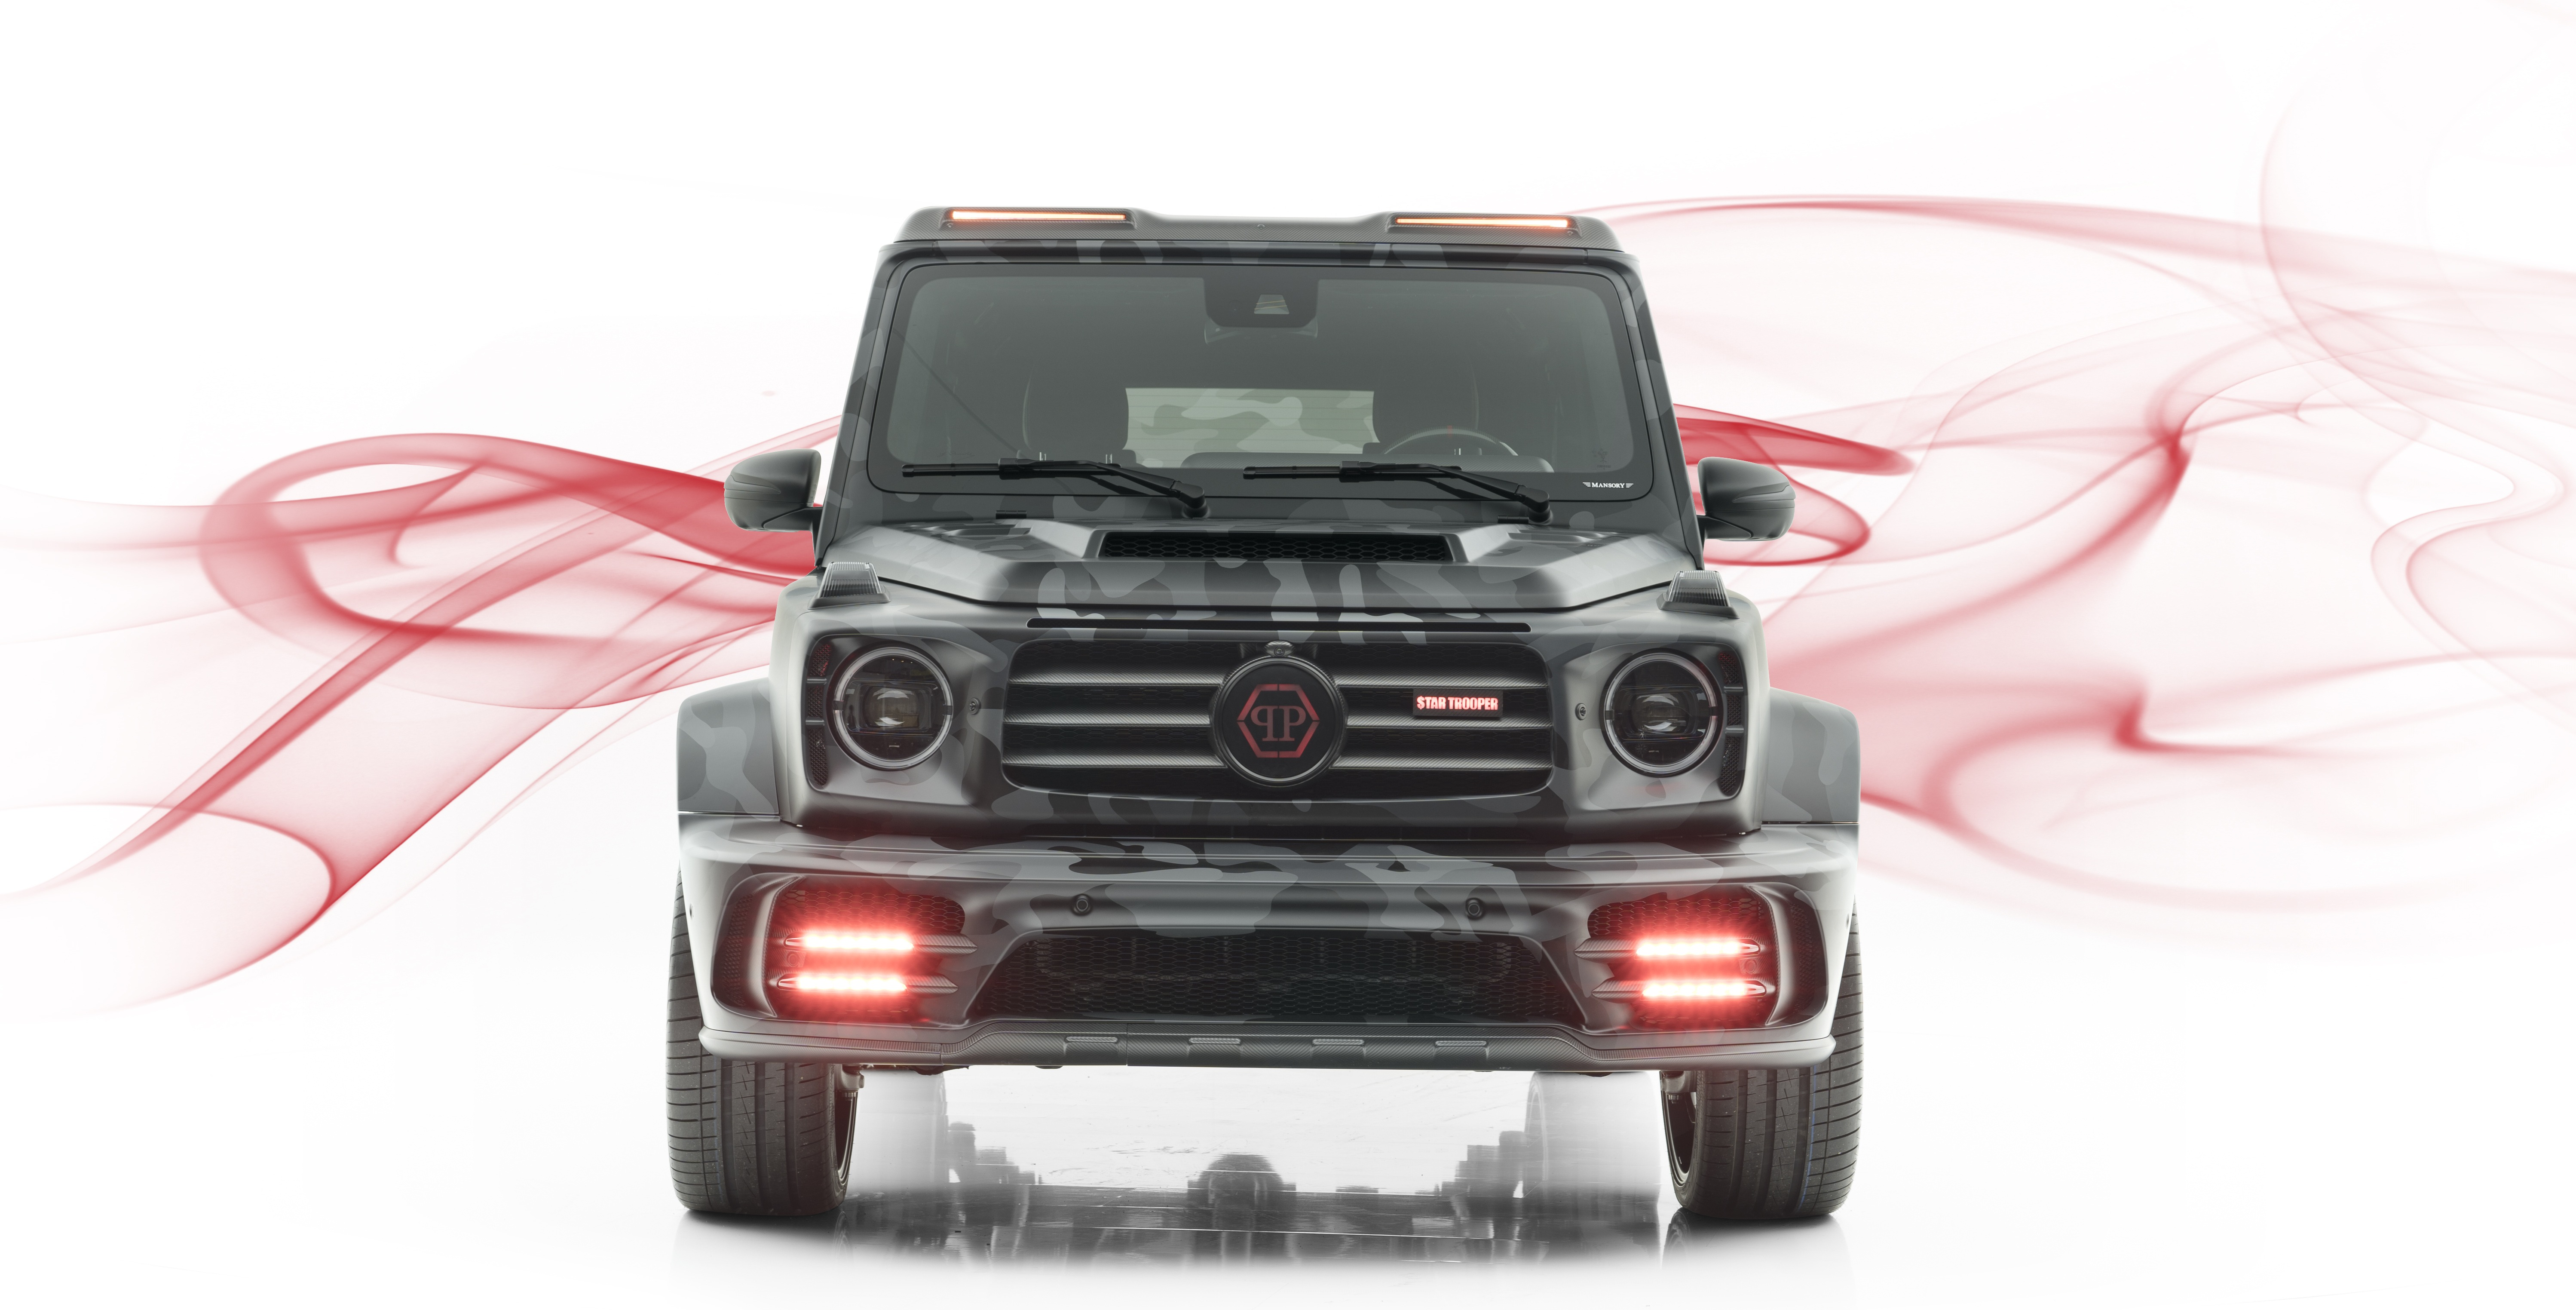 mansory_mercedes-benz_g-class_star_trooper_03.jpg